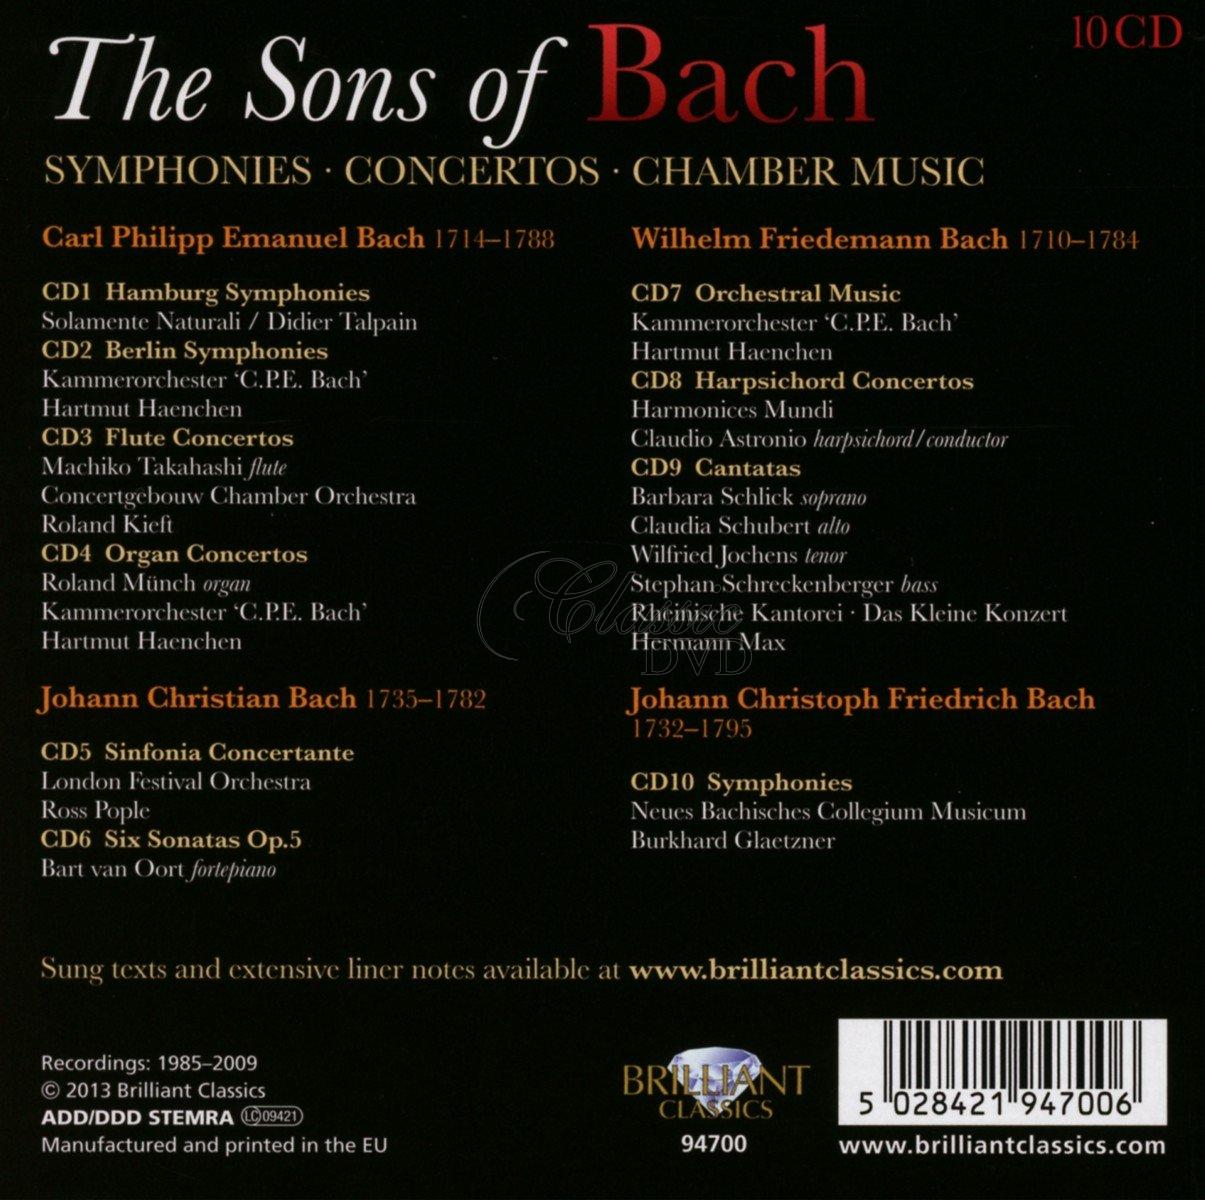 SONS OF BACH Symphonies, Concertos, Chamber Music (10CD)